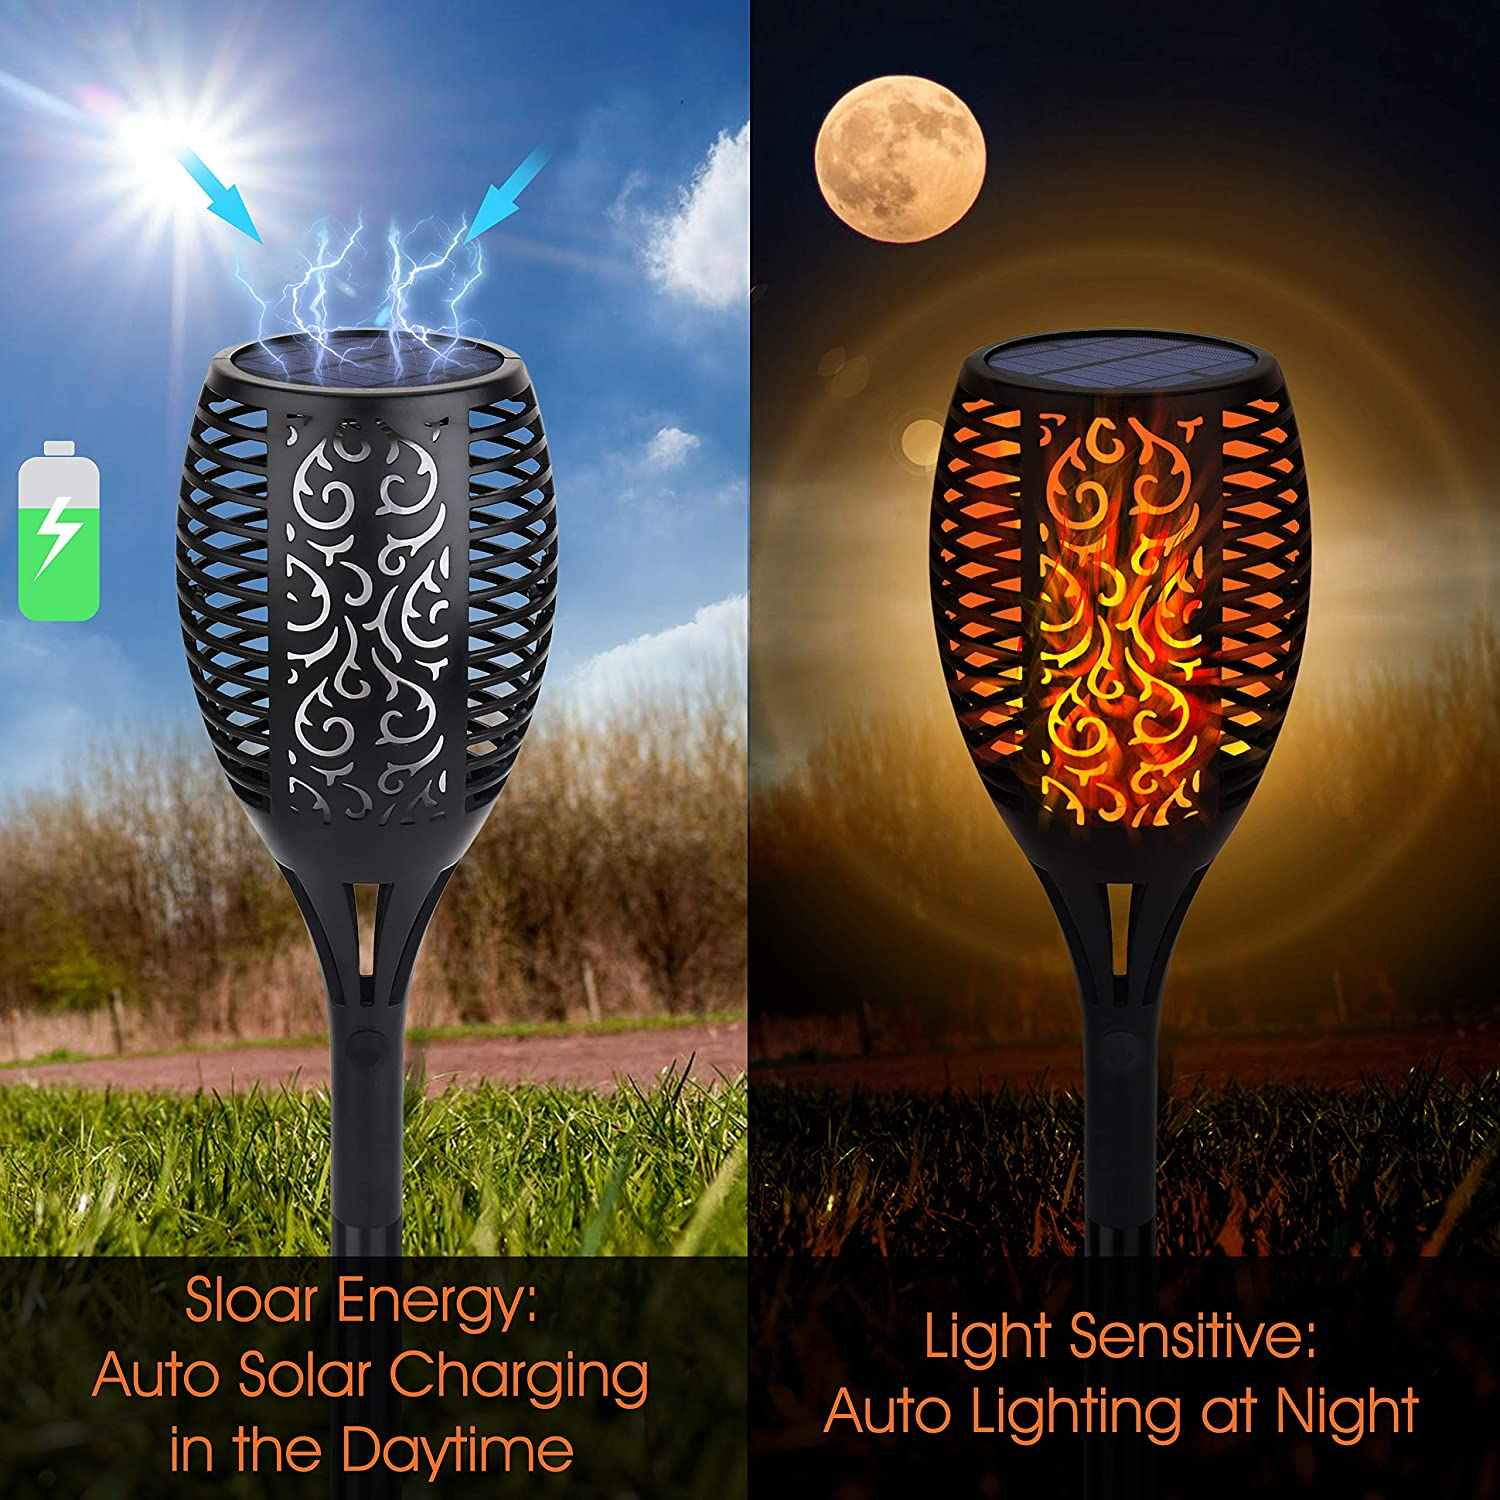 33/96 Led Solar Flame Lights Outdoor IP65 Waterdichte Led Solar Garden Light Flickering Zaklampen Binnenplaats Decoratie Gazon Lamp